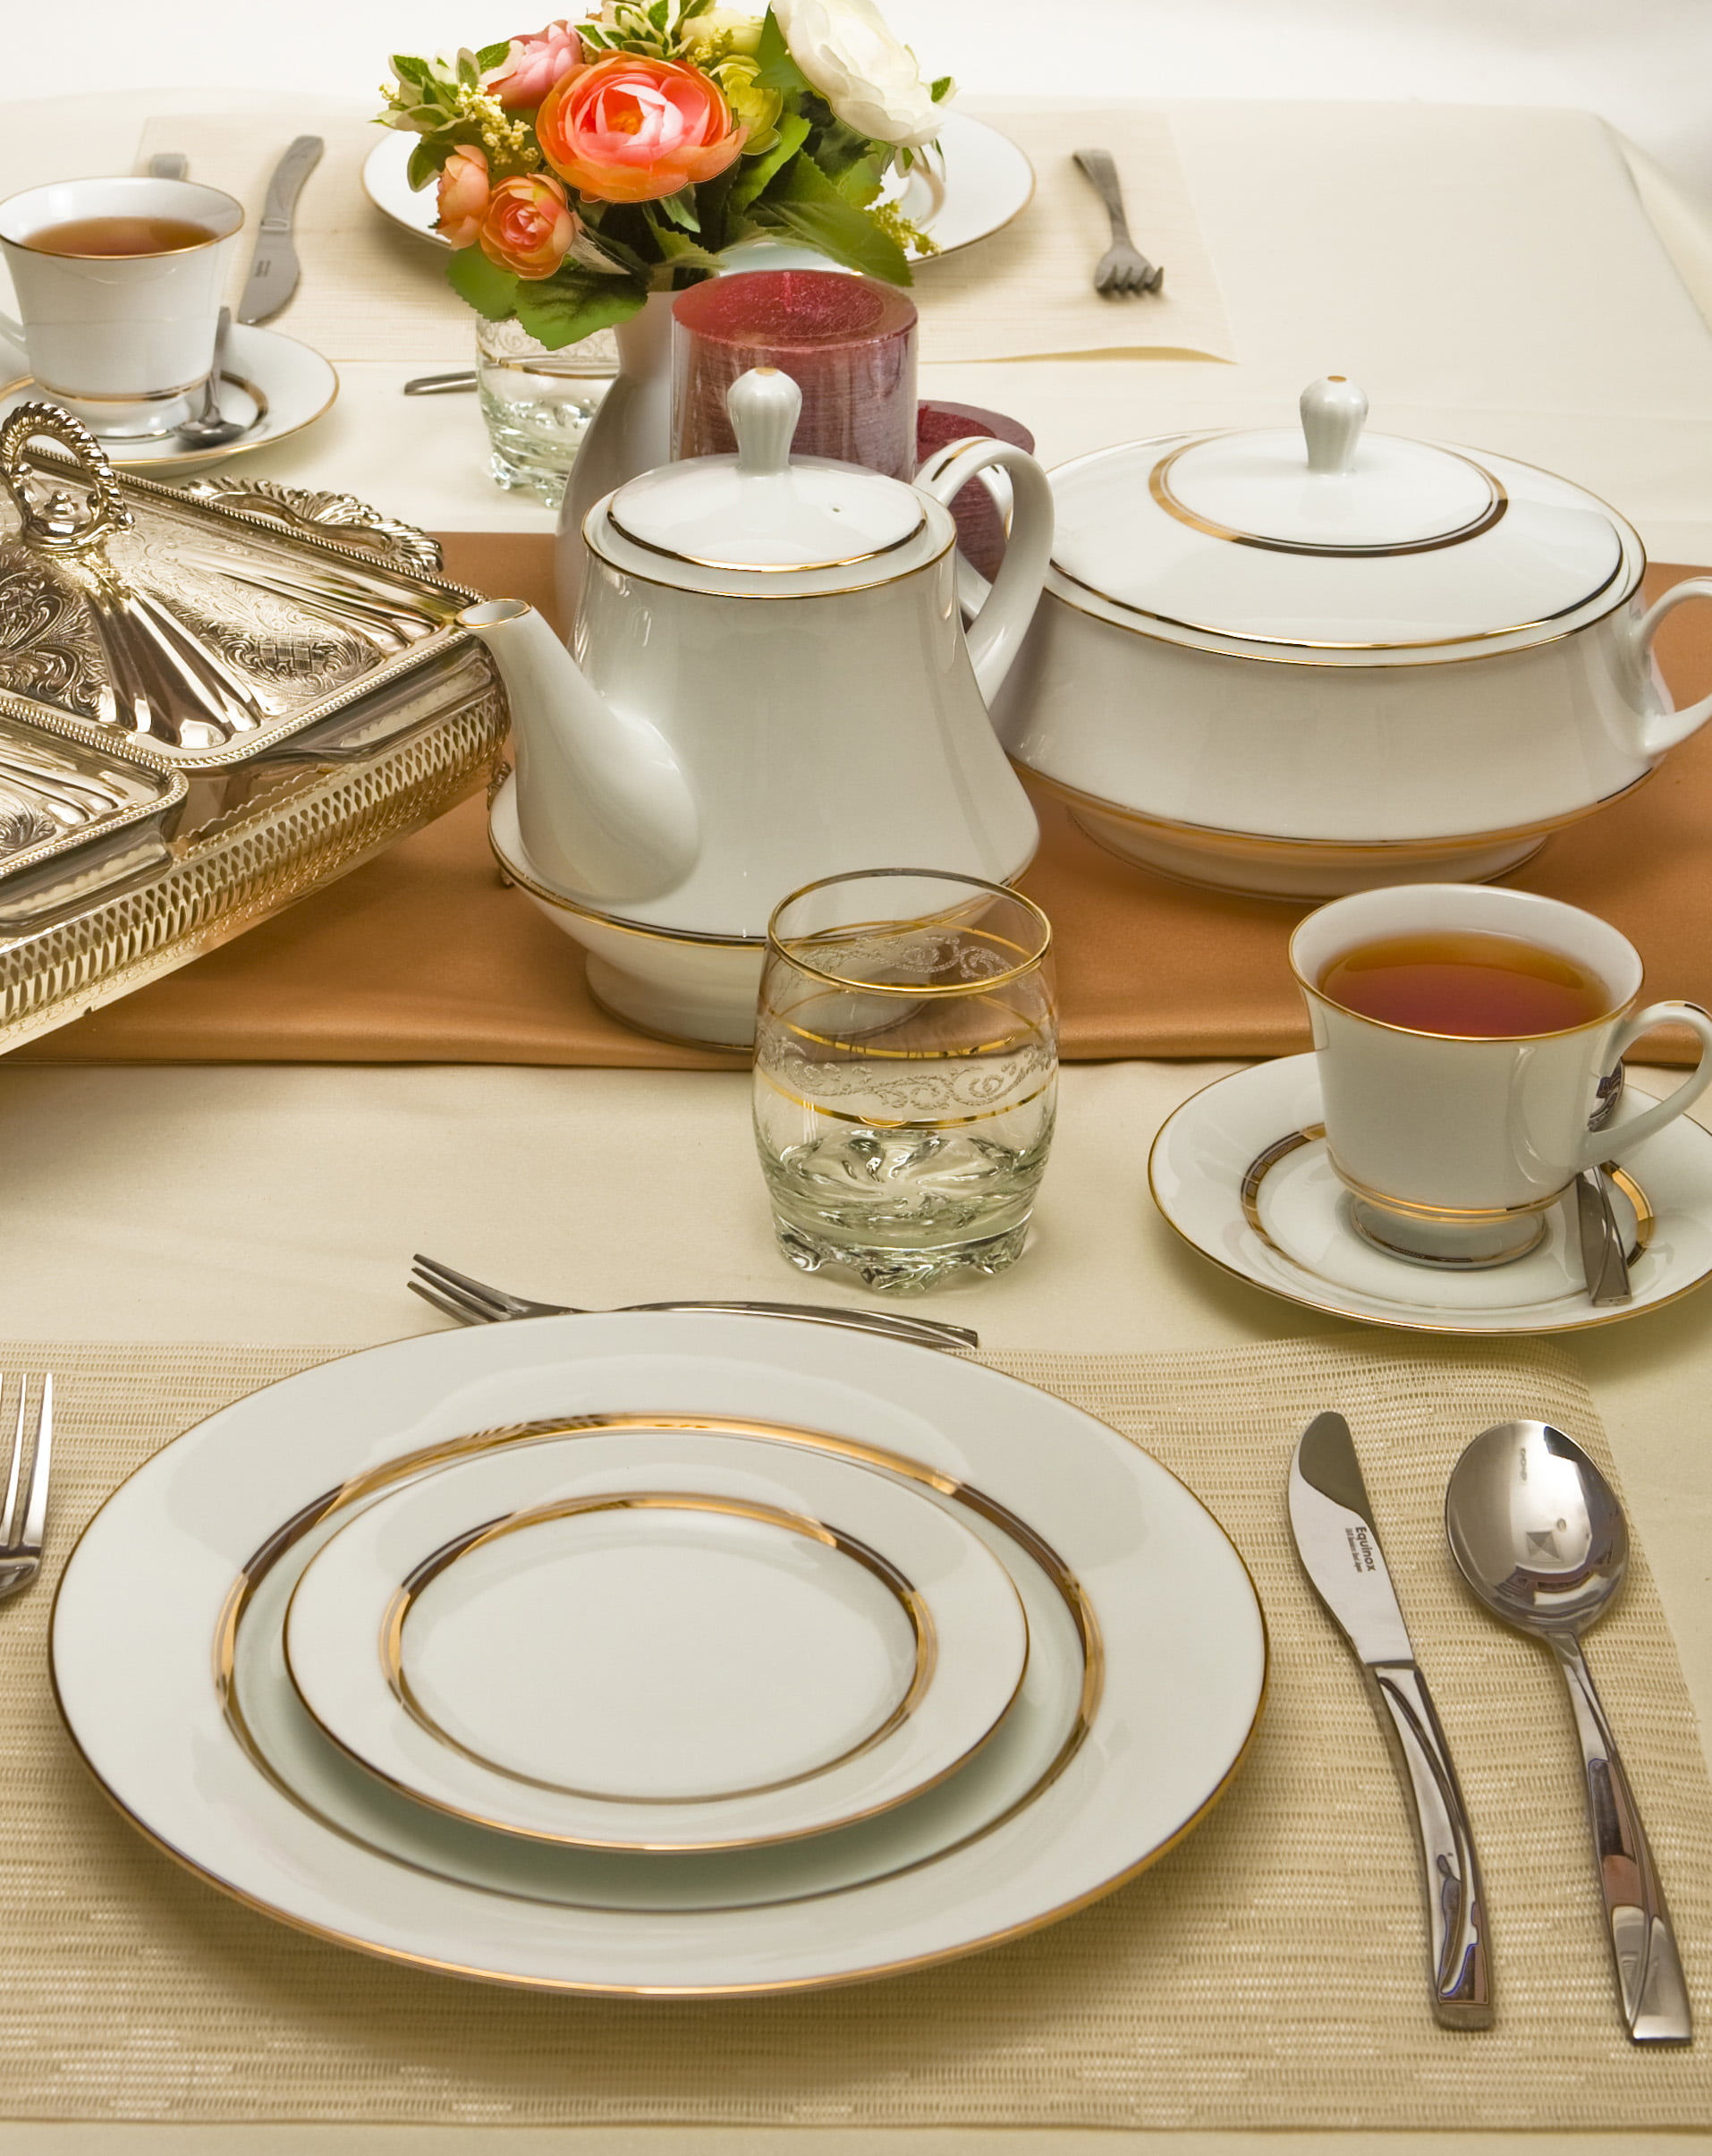 Table Setting Guide from Basic Diner to Formal Dinner